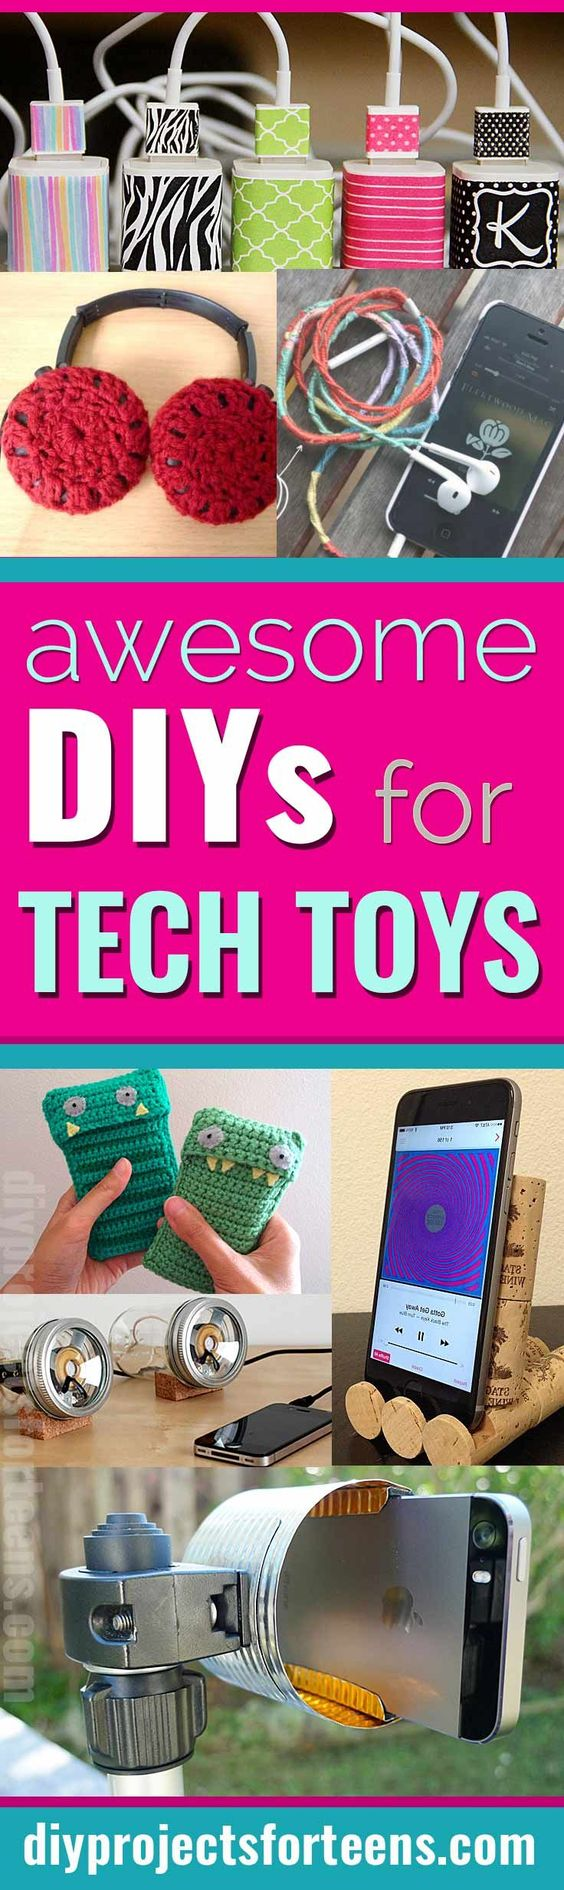 Cool DIY Ideas for Your iPhone iPad Tablets & Phones   Fun Projects for Chargers, Cases and Headphones